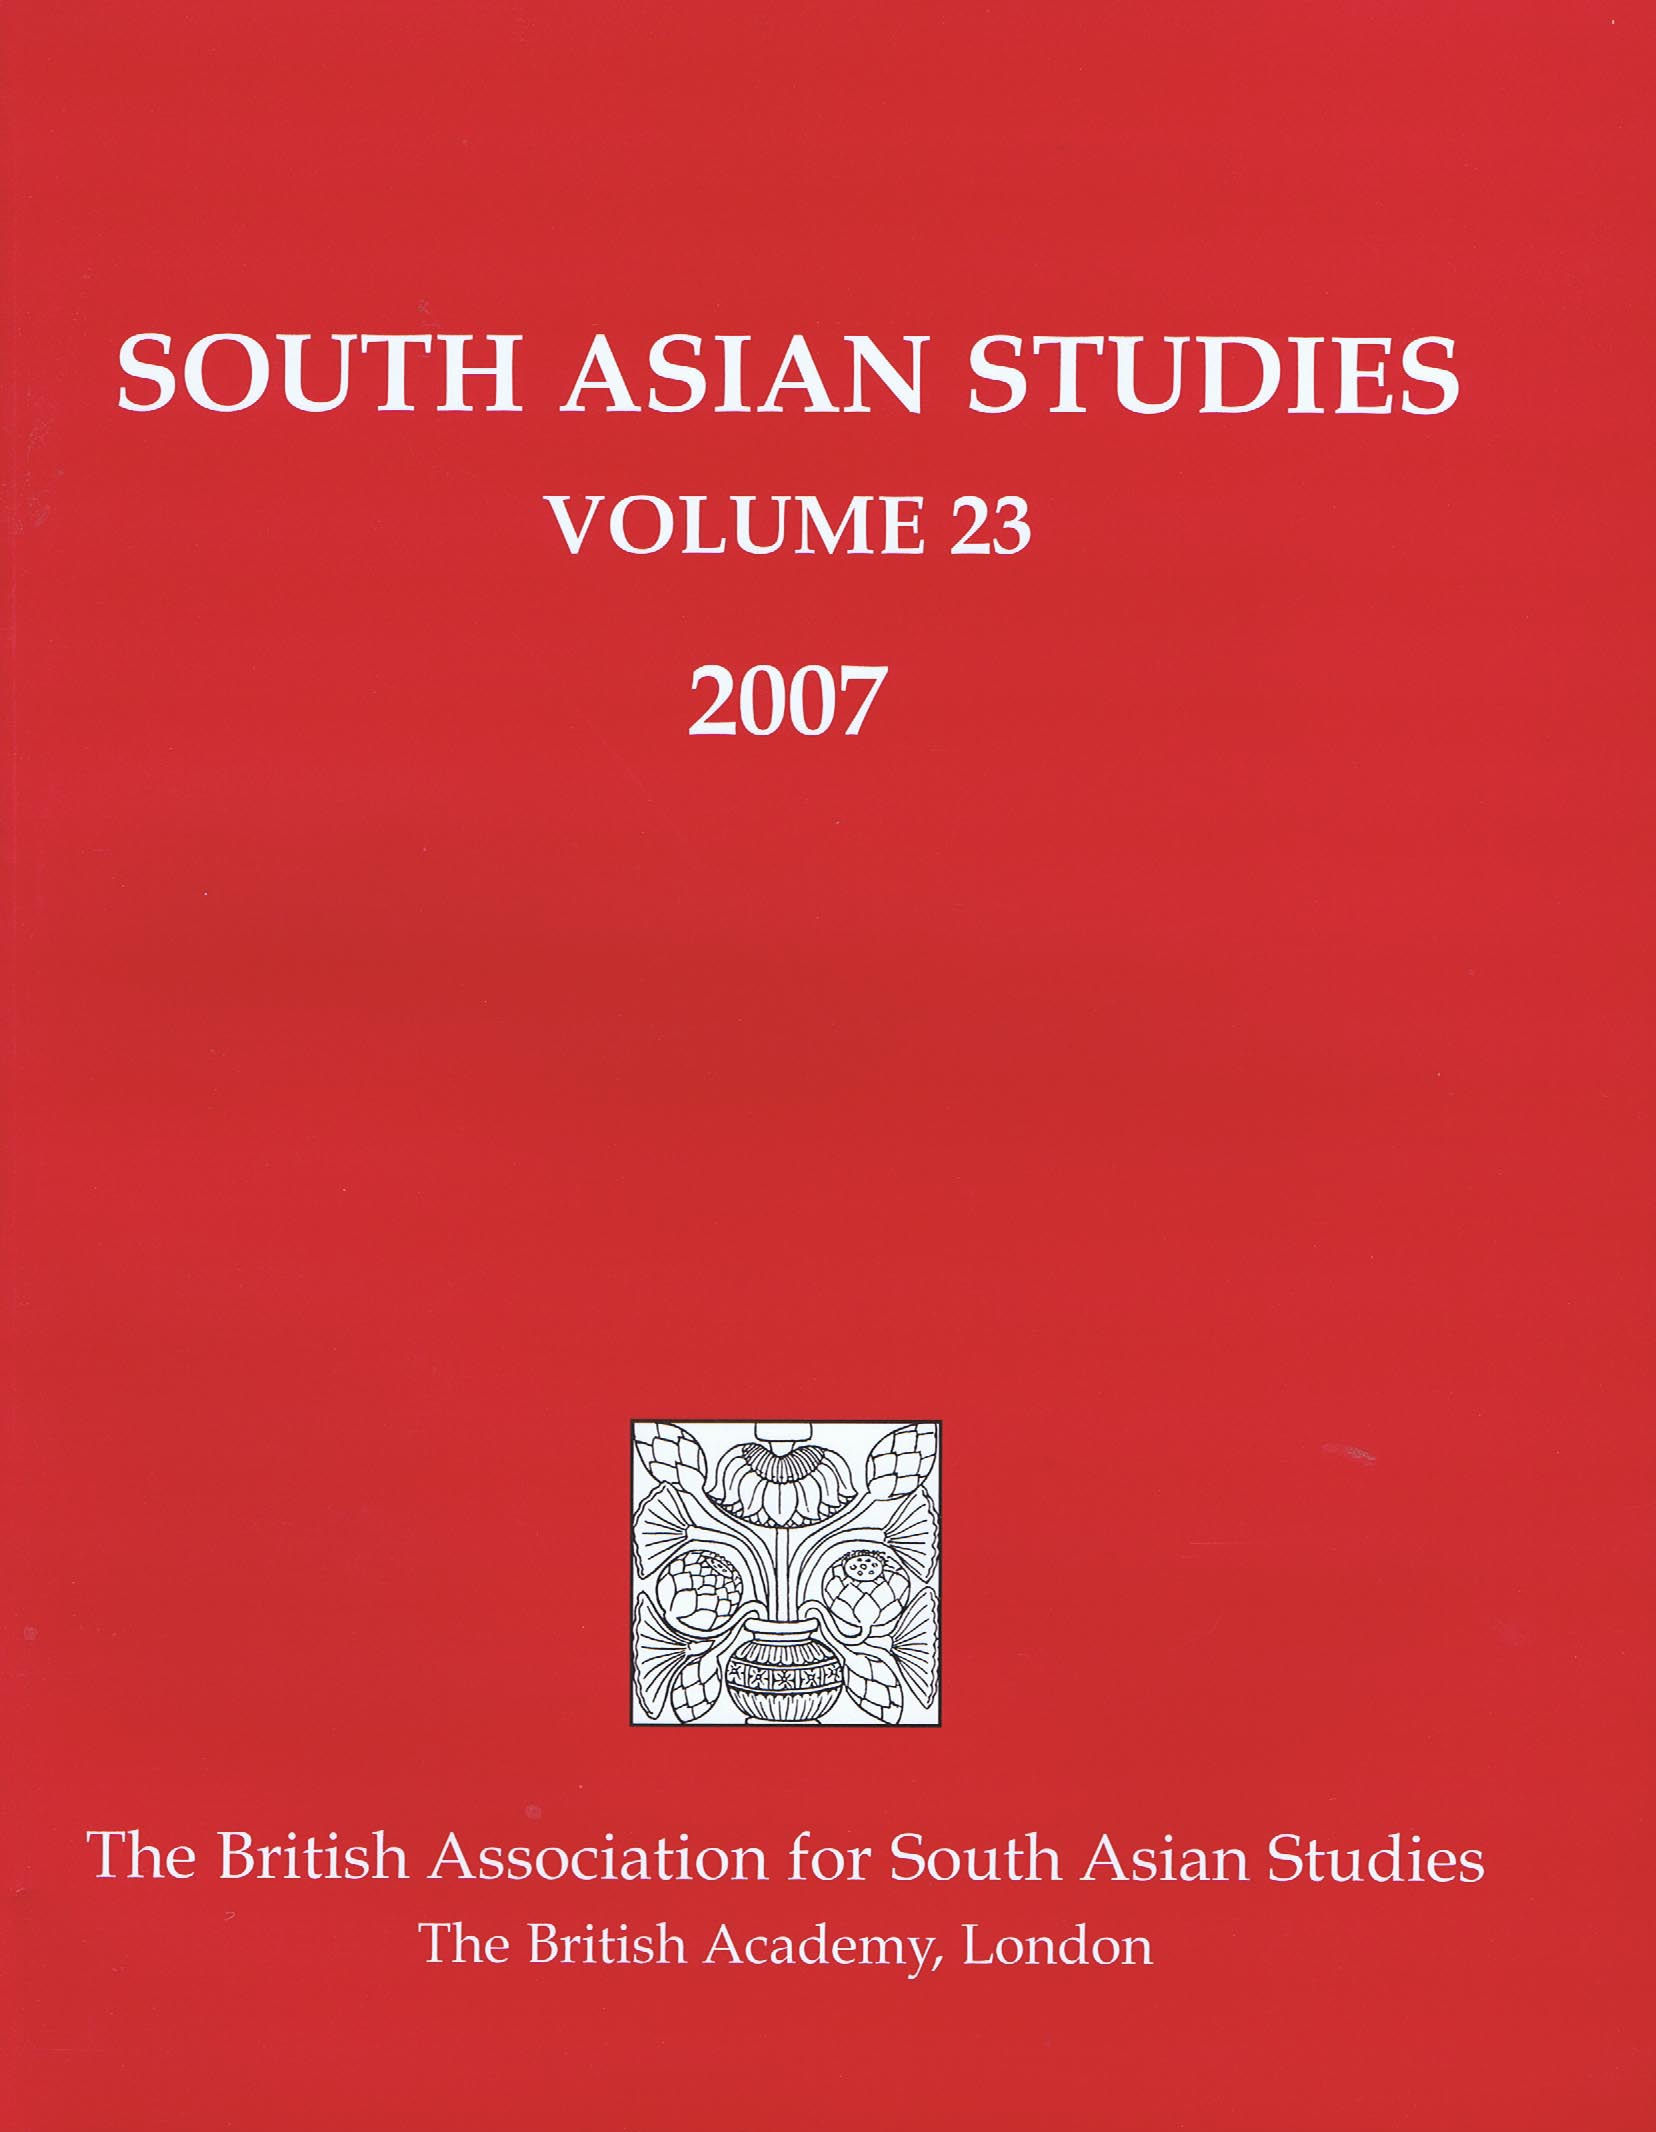 01_SAS,_vol_23,_2007_cover